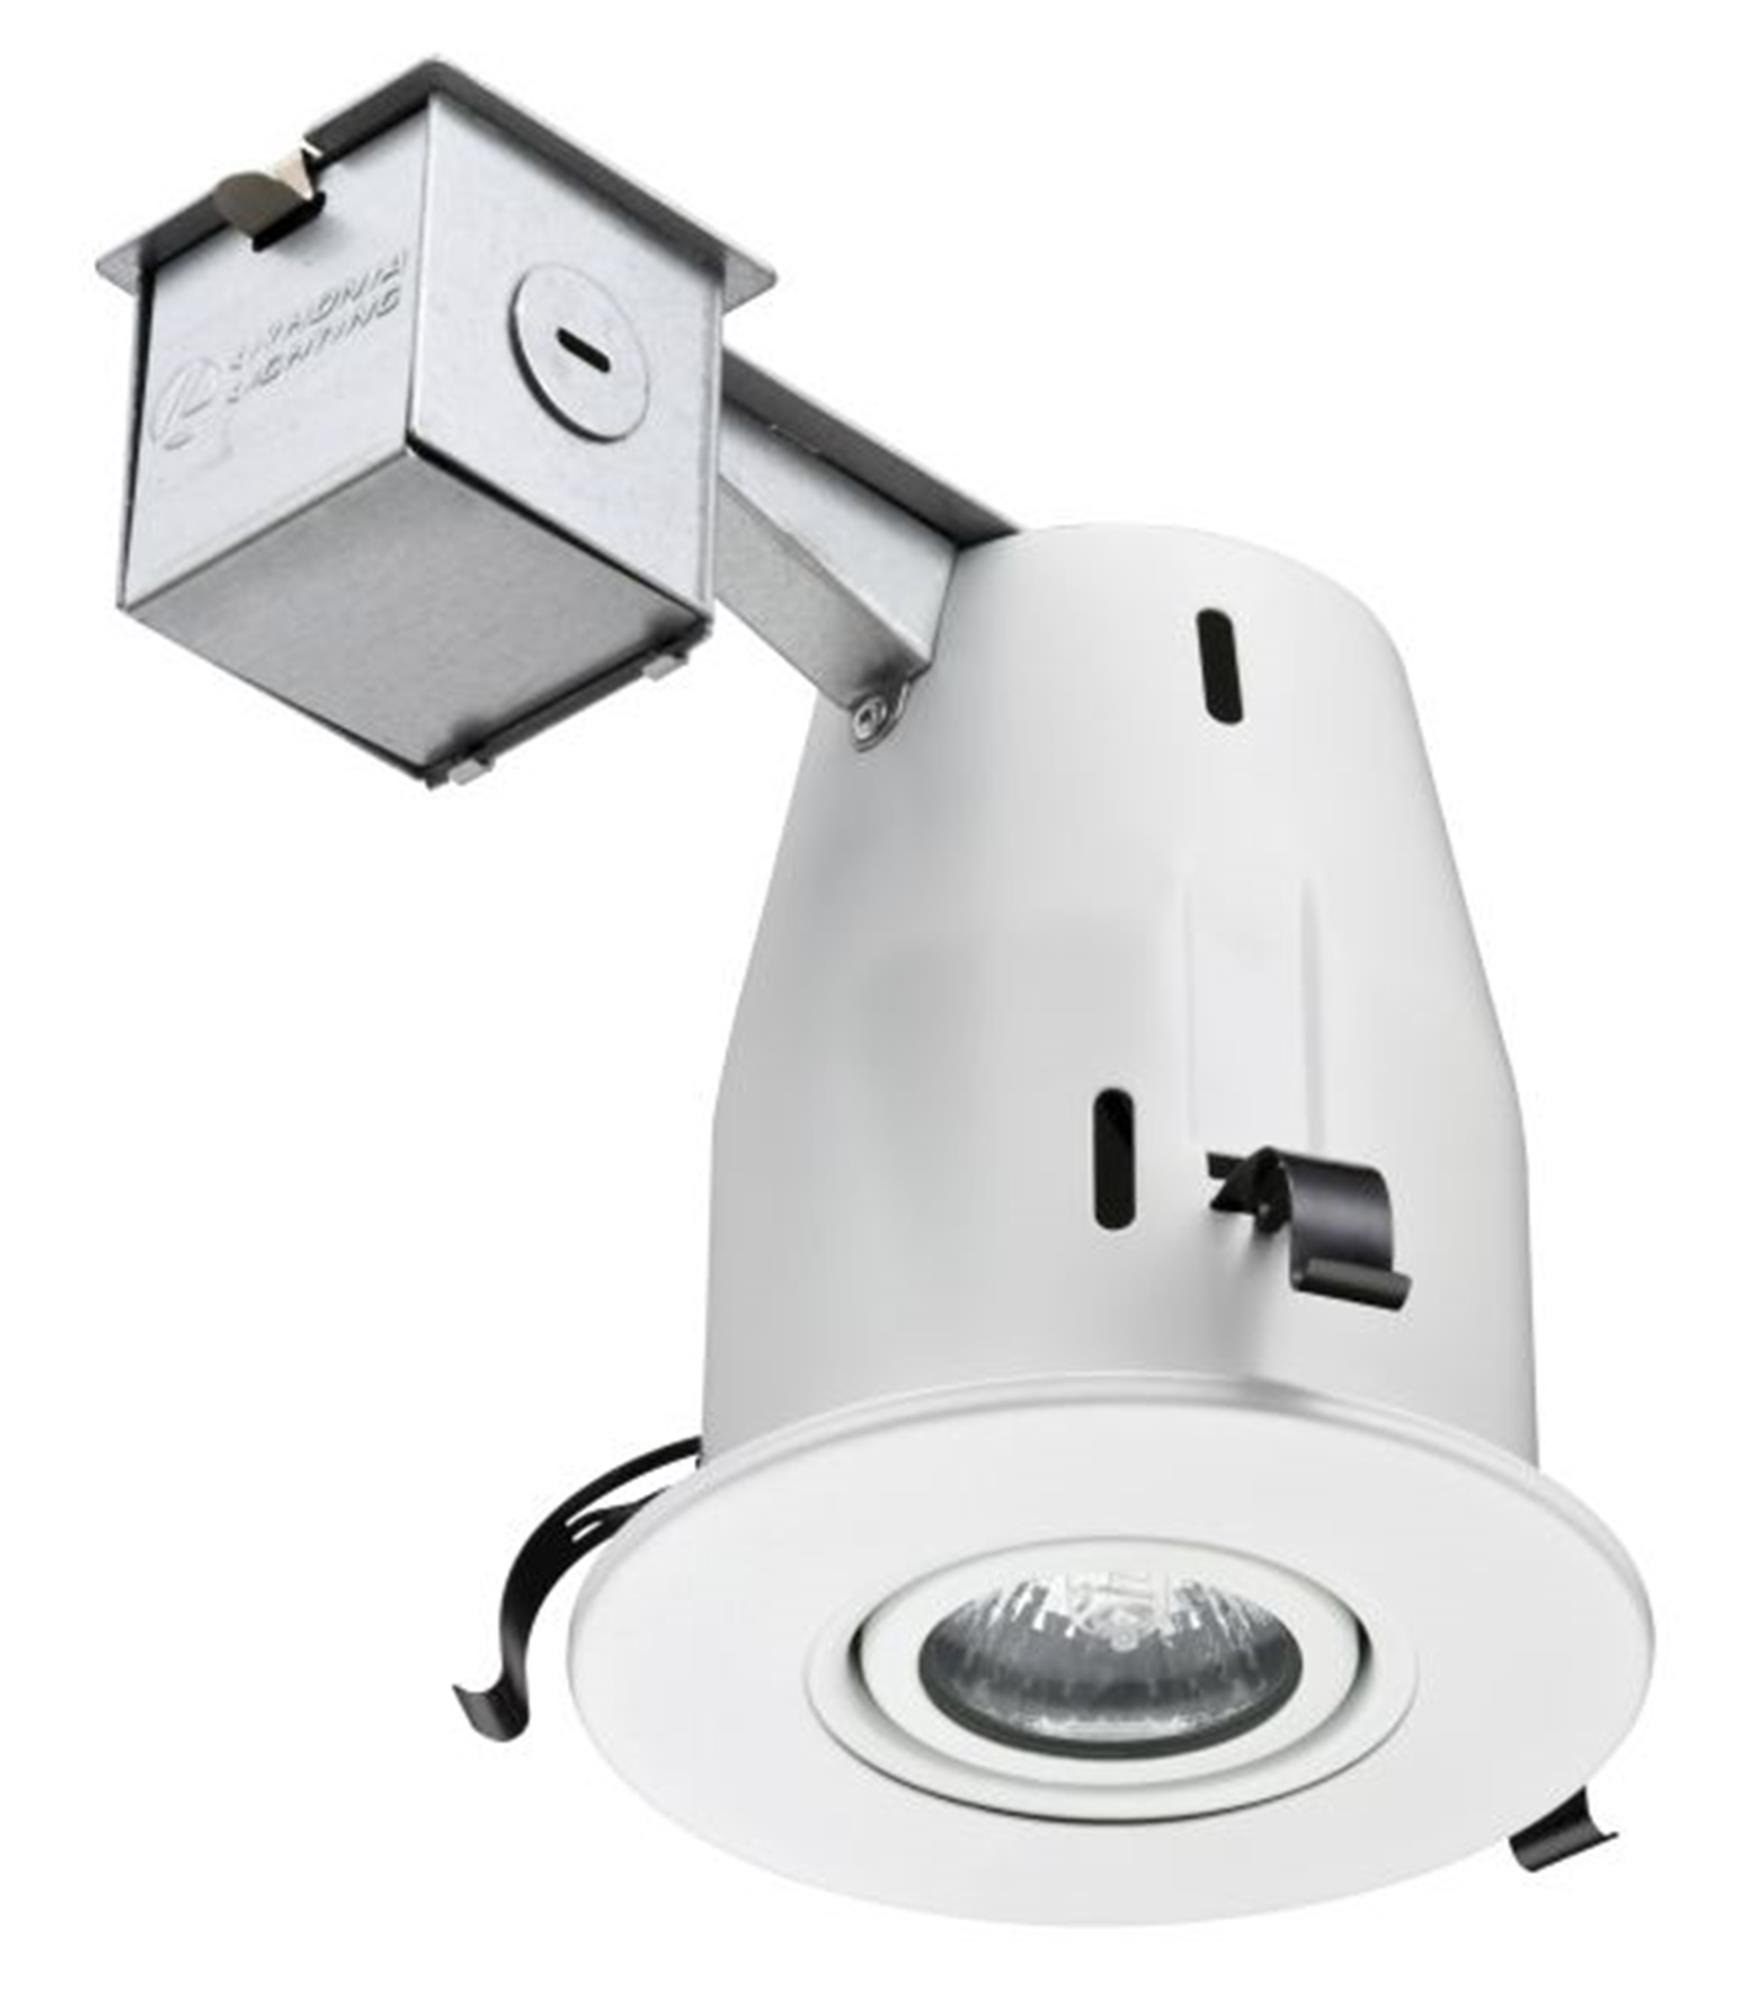 Lithonia Lighting LK4GMW LED LPI M6 4 Inch Gimbal Kit with LED Lamp Included in White by Lithonia Lighting (Image #1)